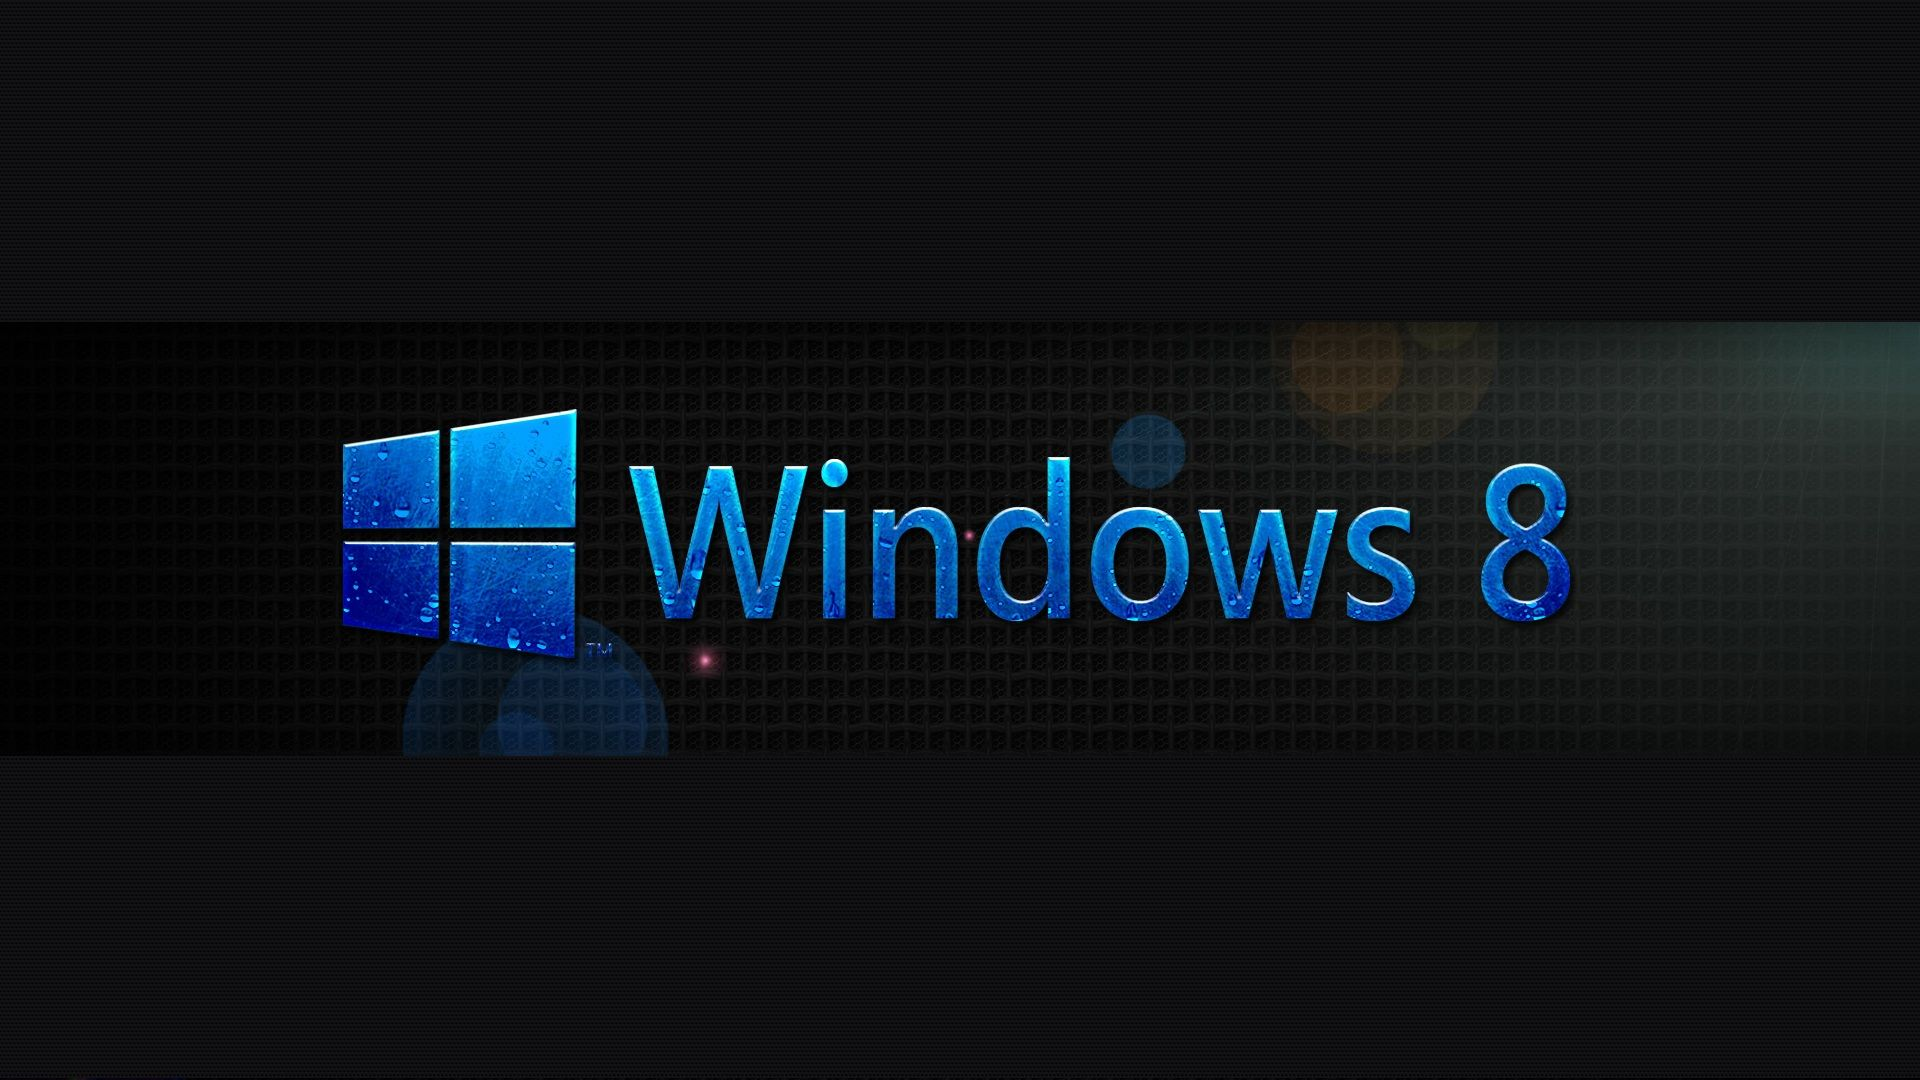 Windows 8 HD Wallpapers Simple Back New HD Wallpapers Pinterest